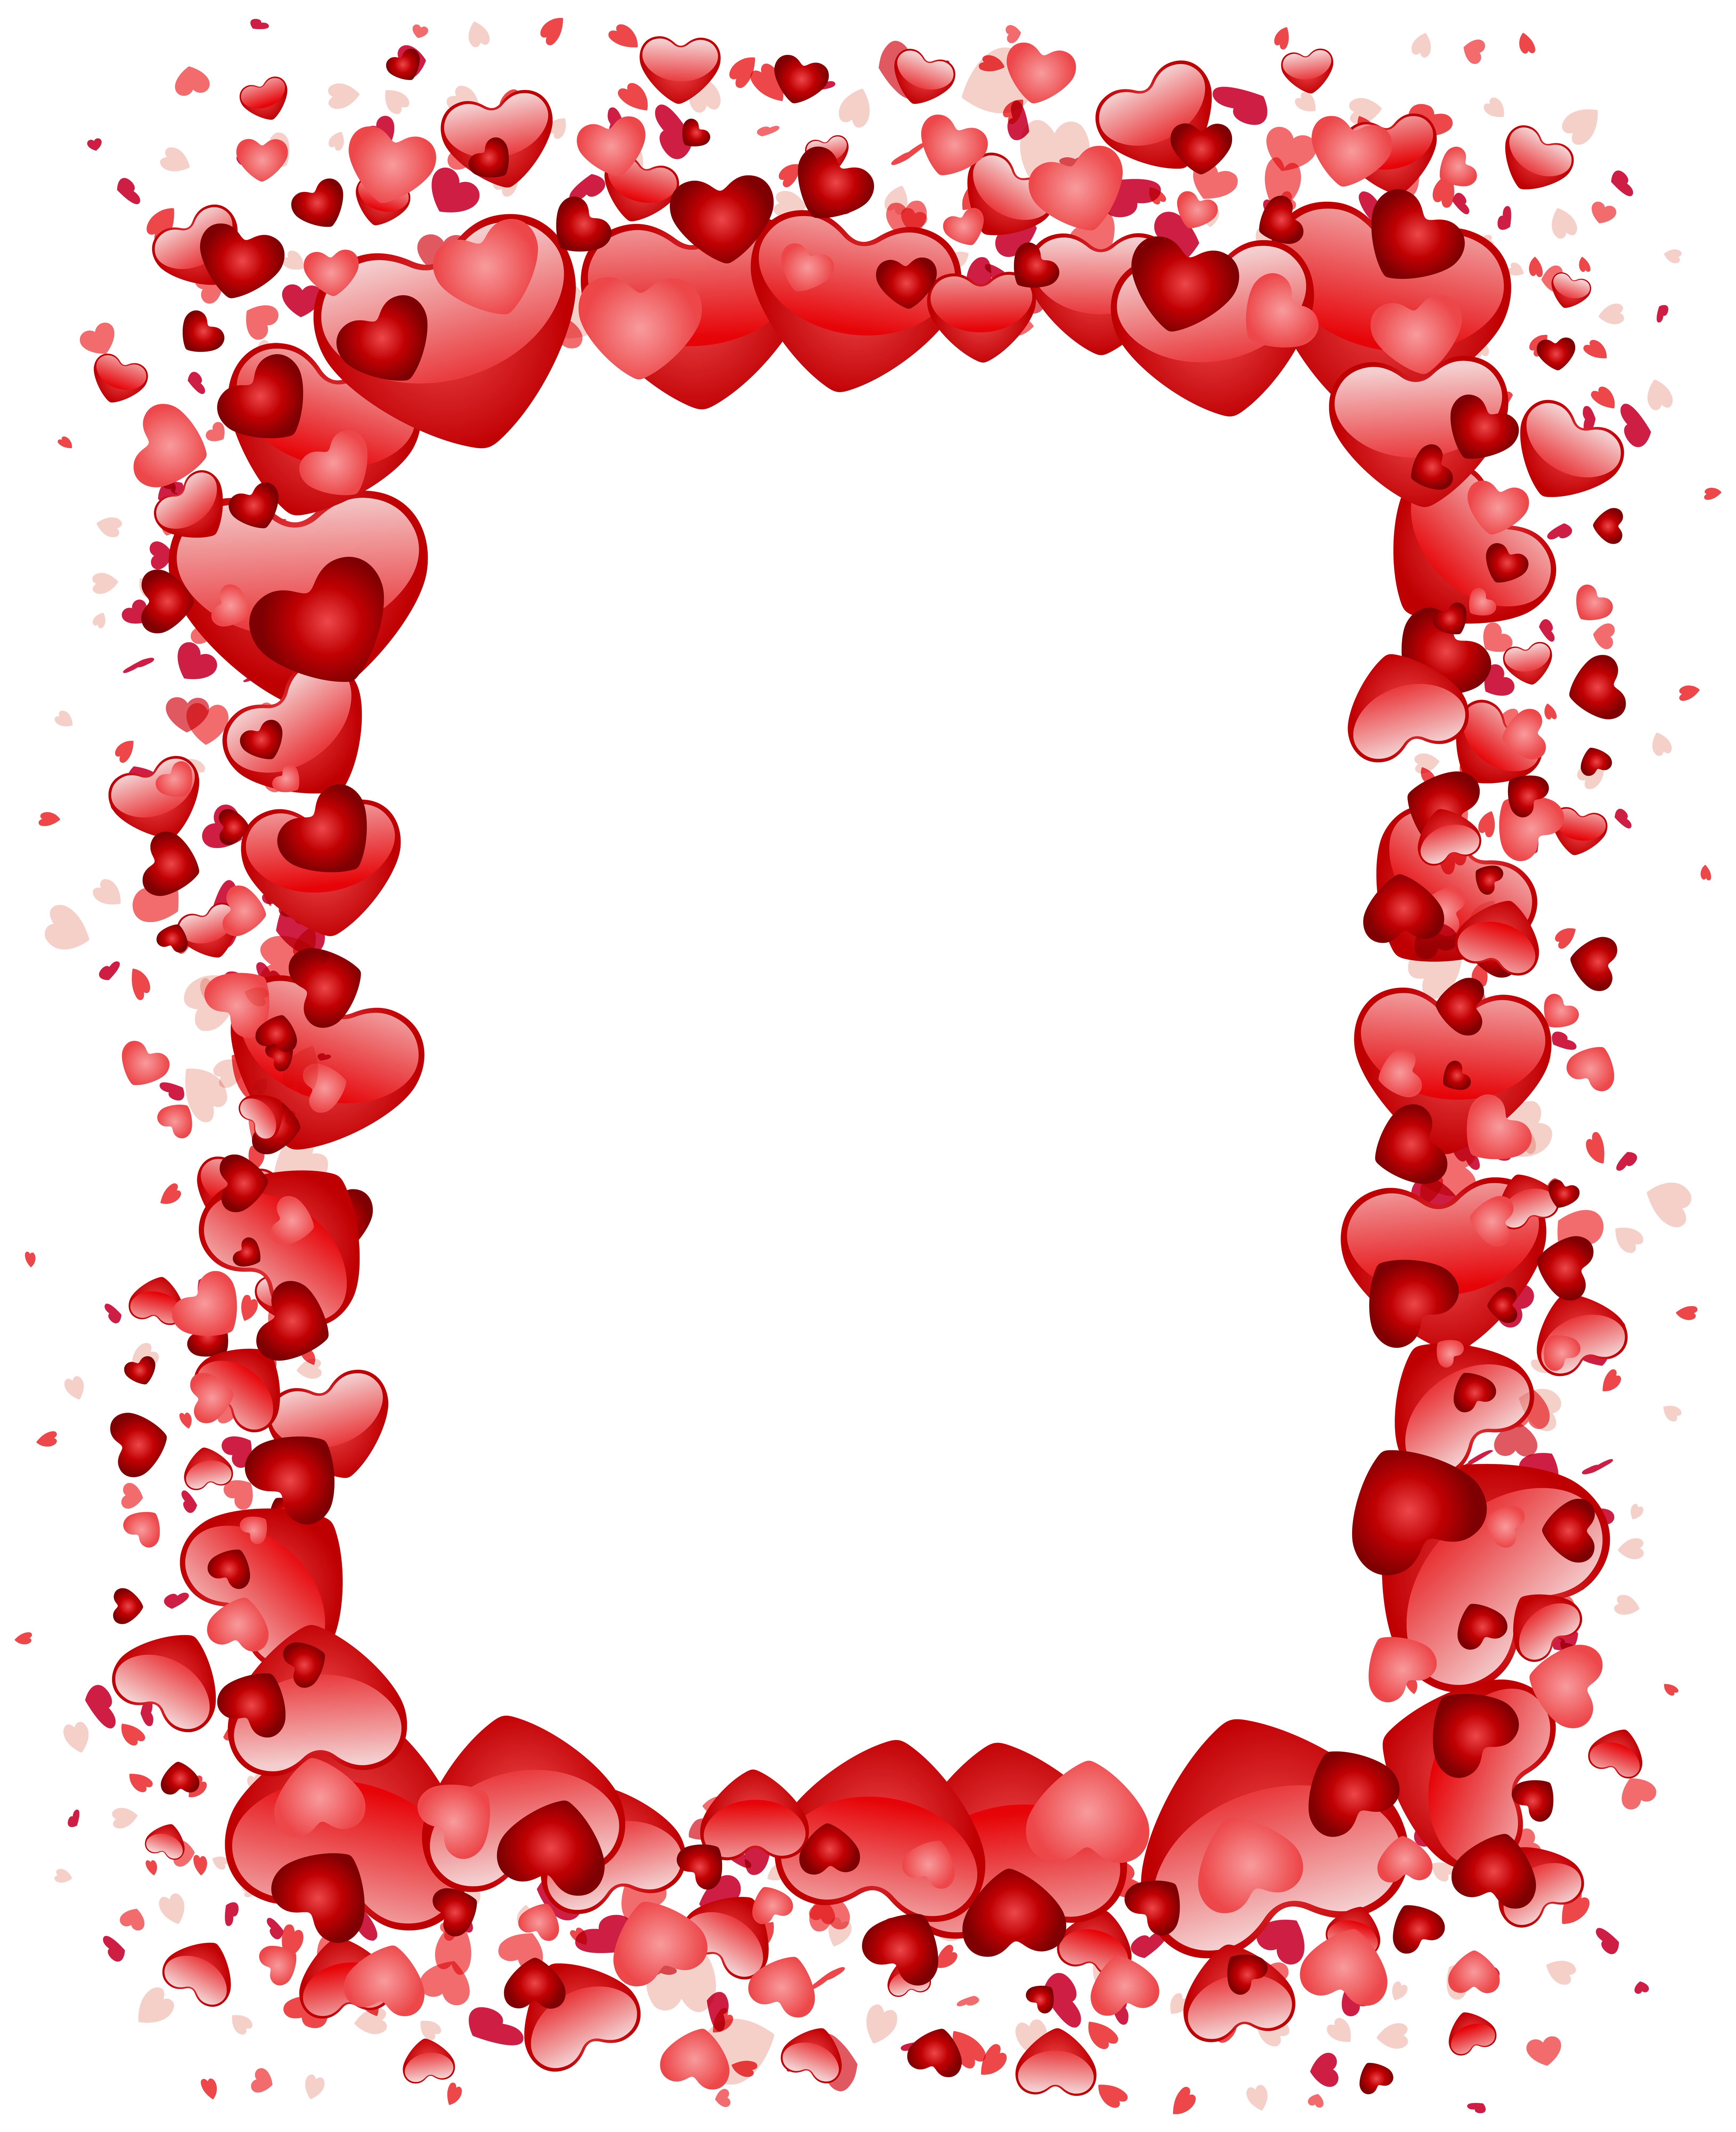 Valentine S Day Hearts Border Transparent Png Clip Art Image Valentines Day Border Valentines Clip Valentines Day Clipart